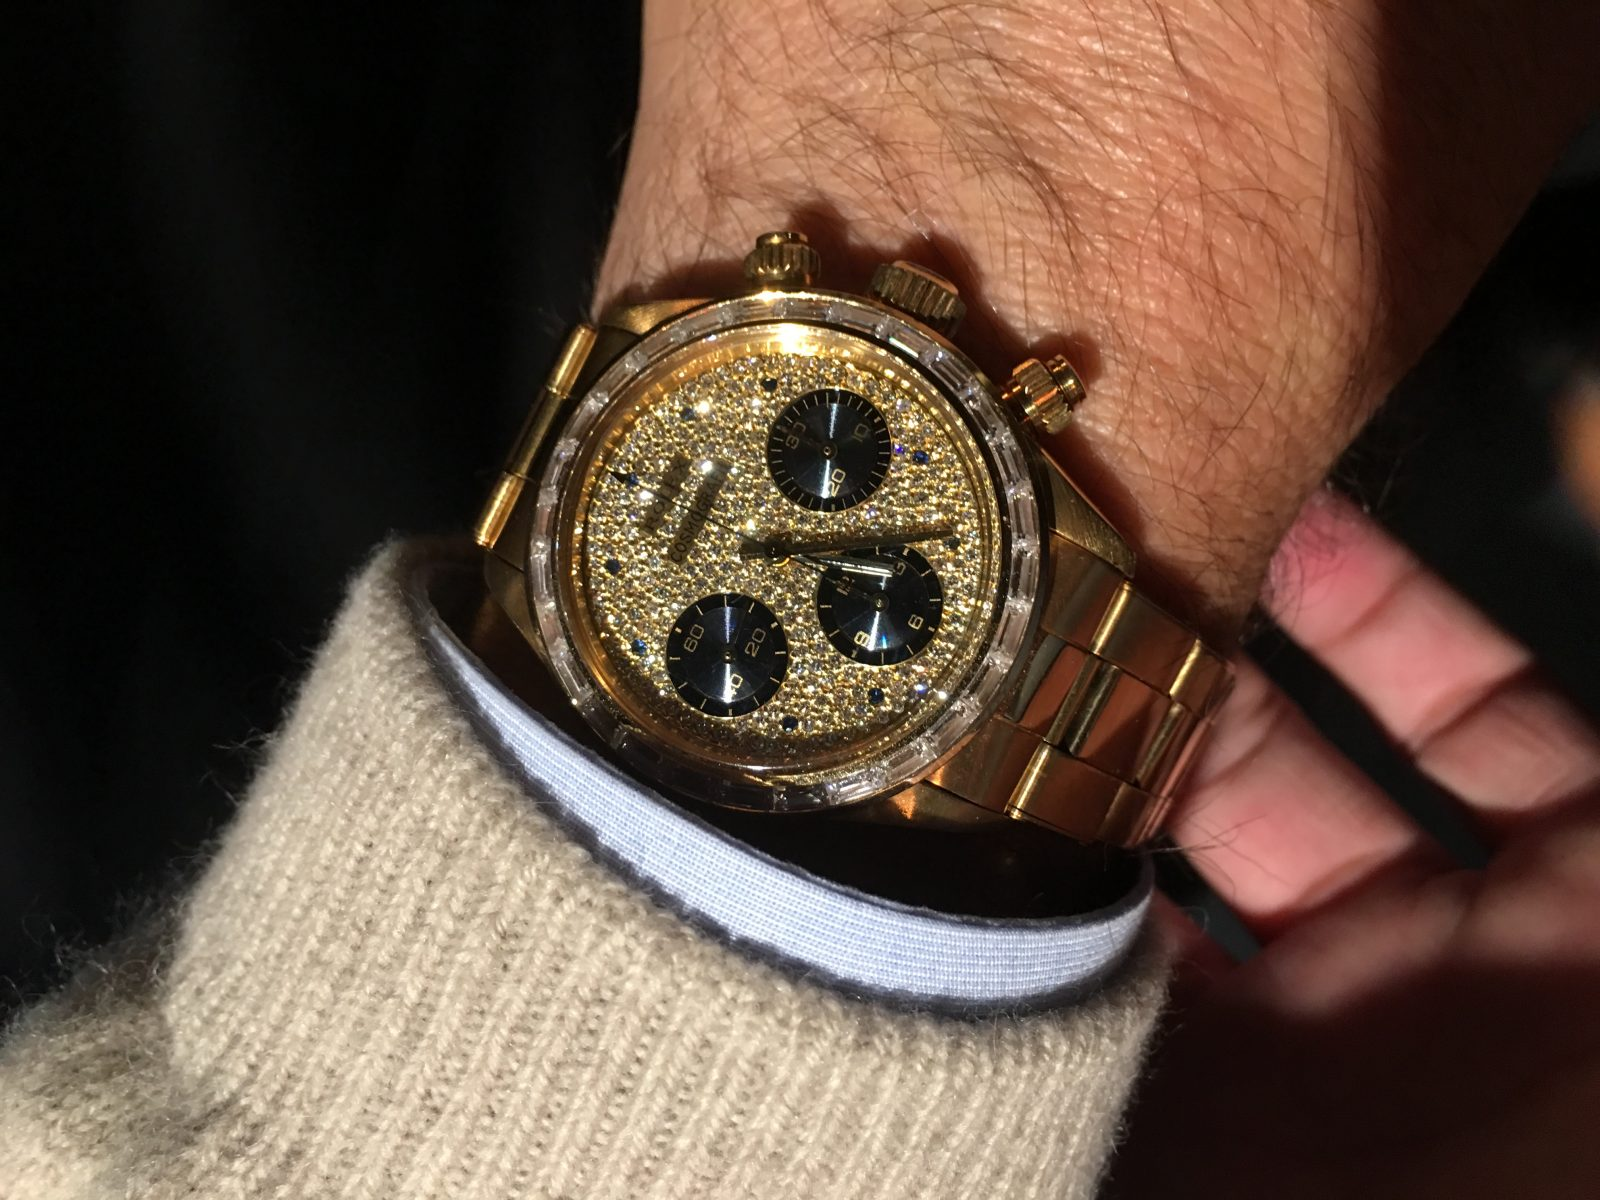 The amazing vintage Rolex & other iconic watches I came across..